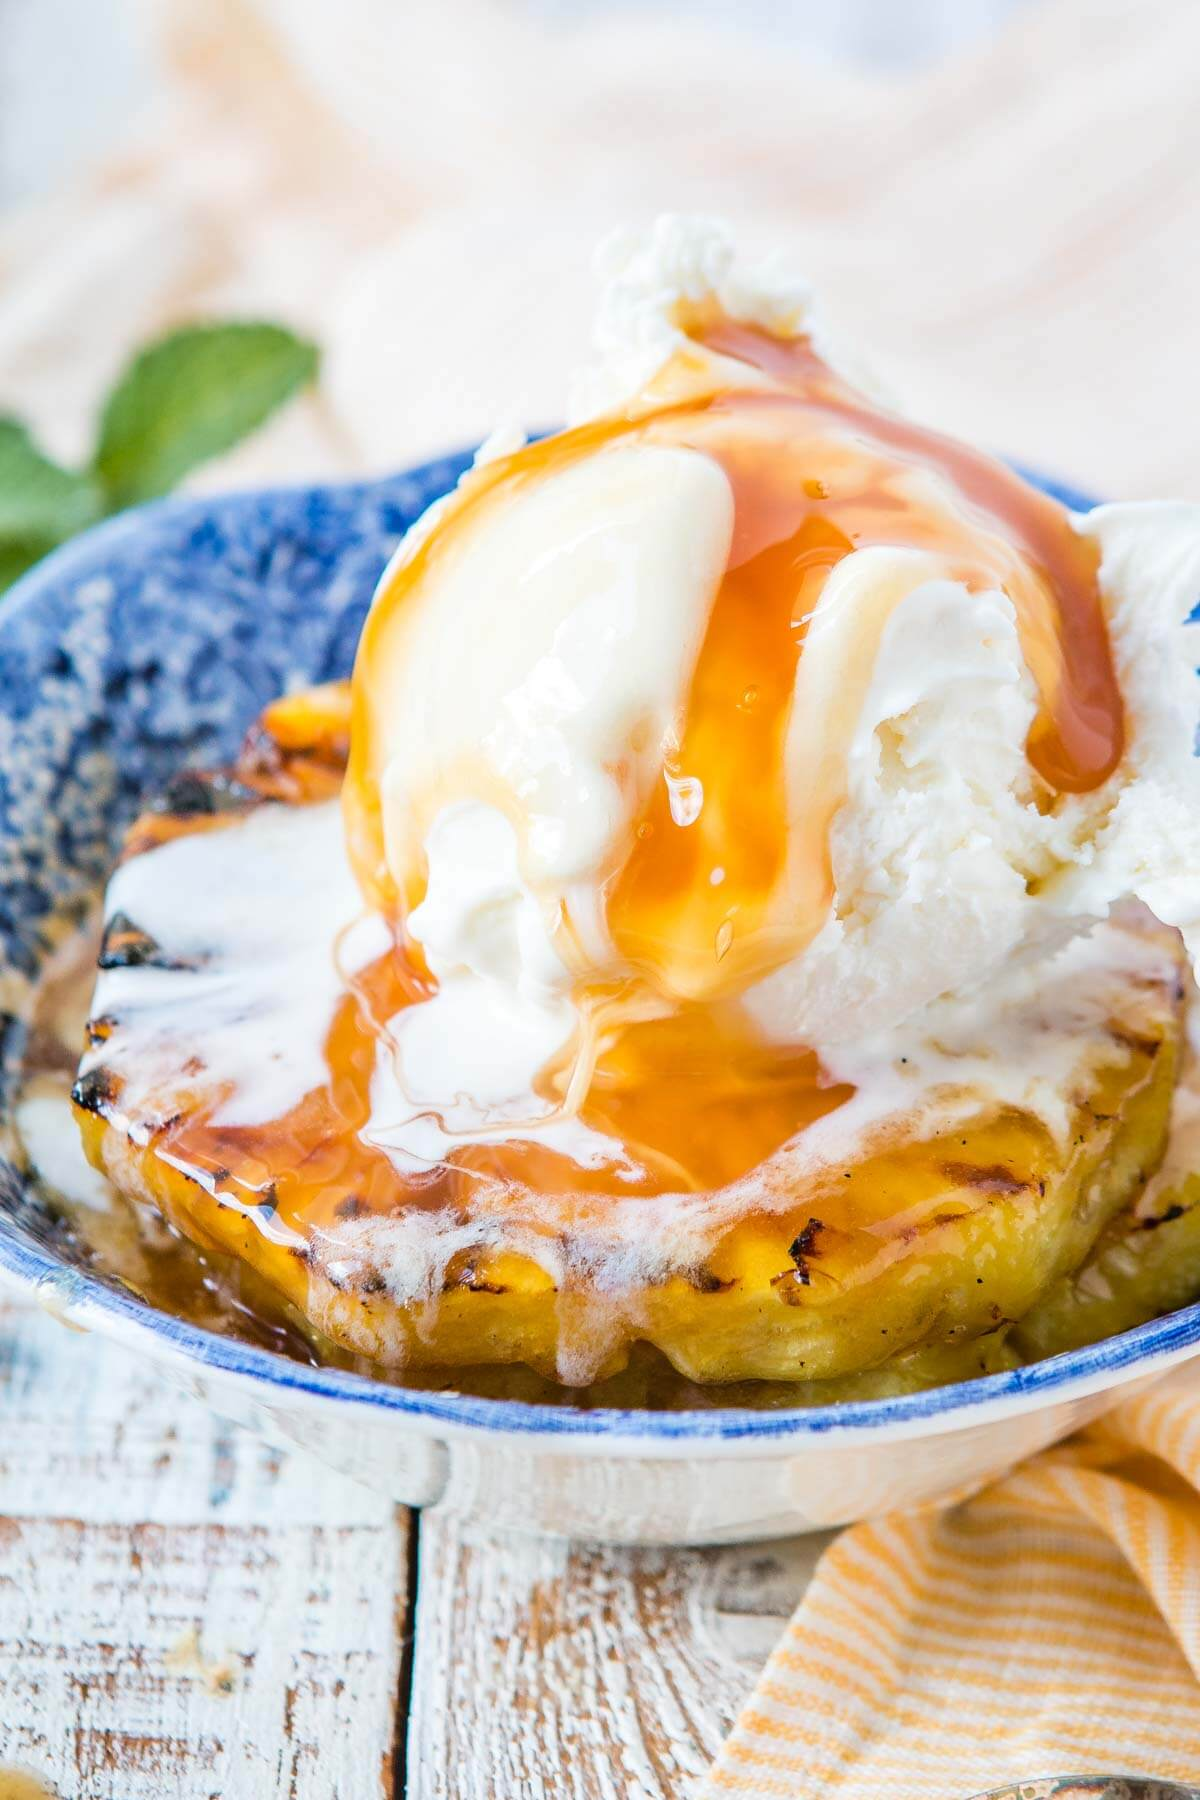 SWEET. MERCY. This brown sugar grilled pineapple sundaes recipe is the best way to use pineapple during the summer. Sundae of the year!